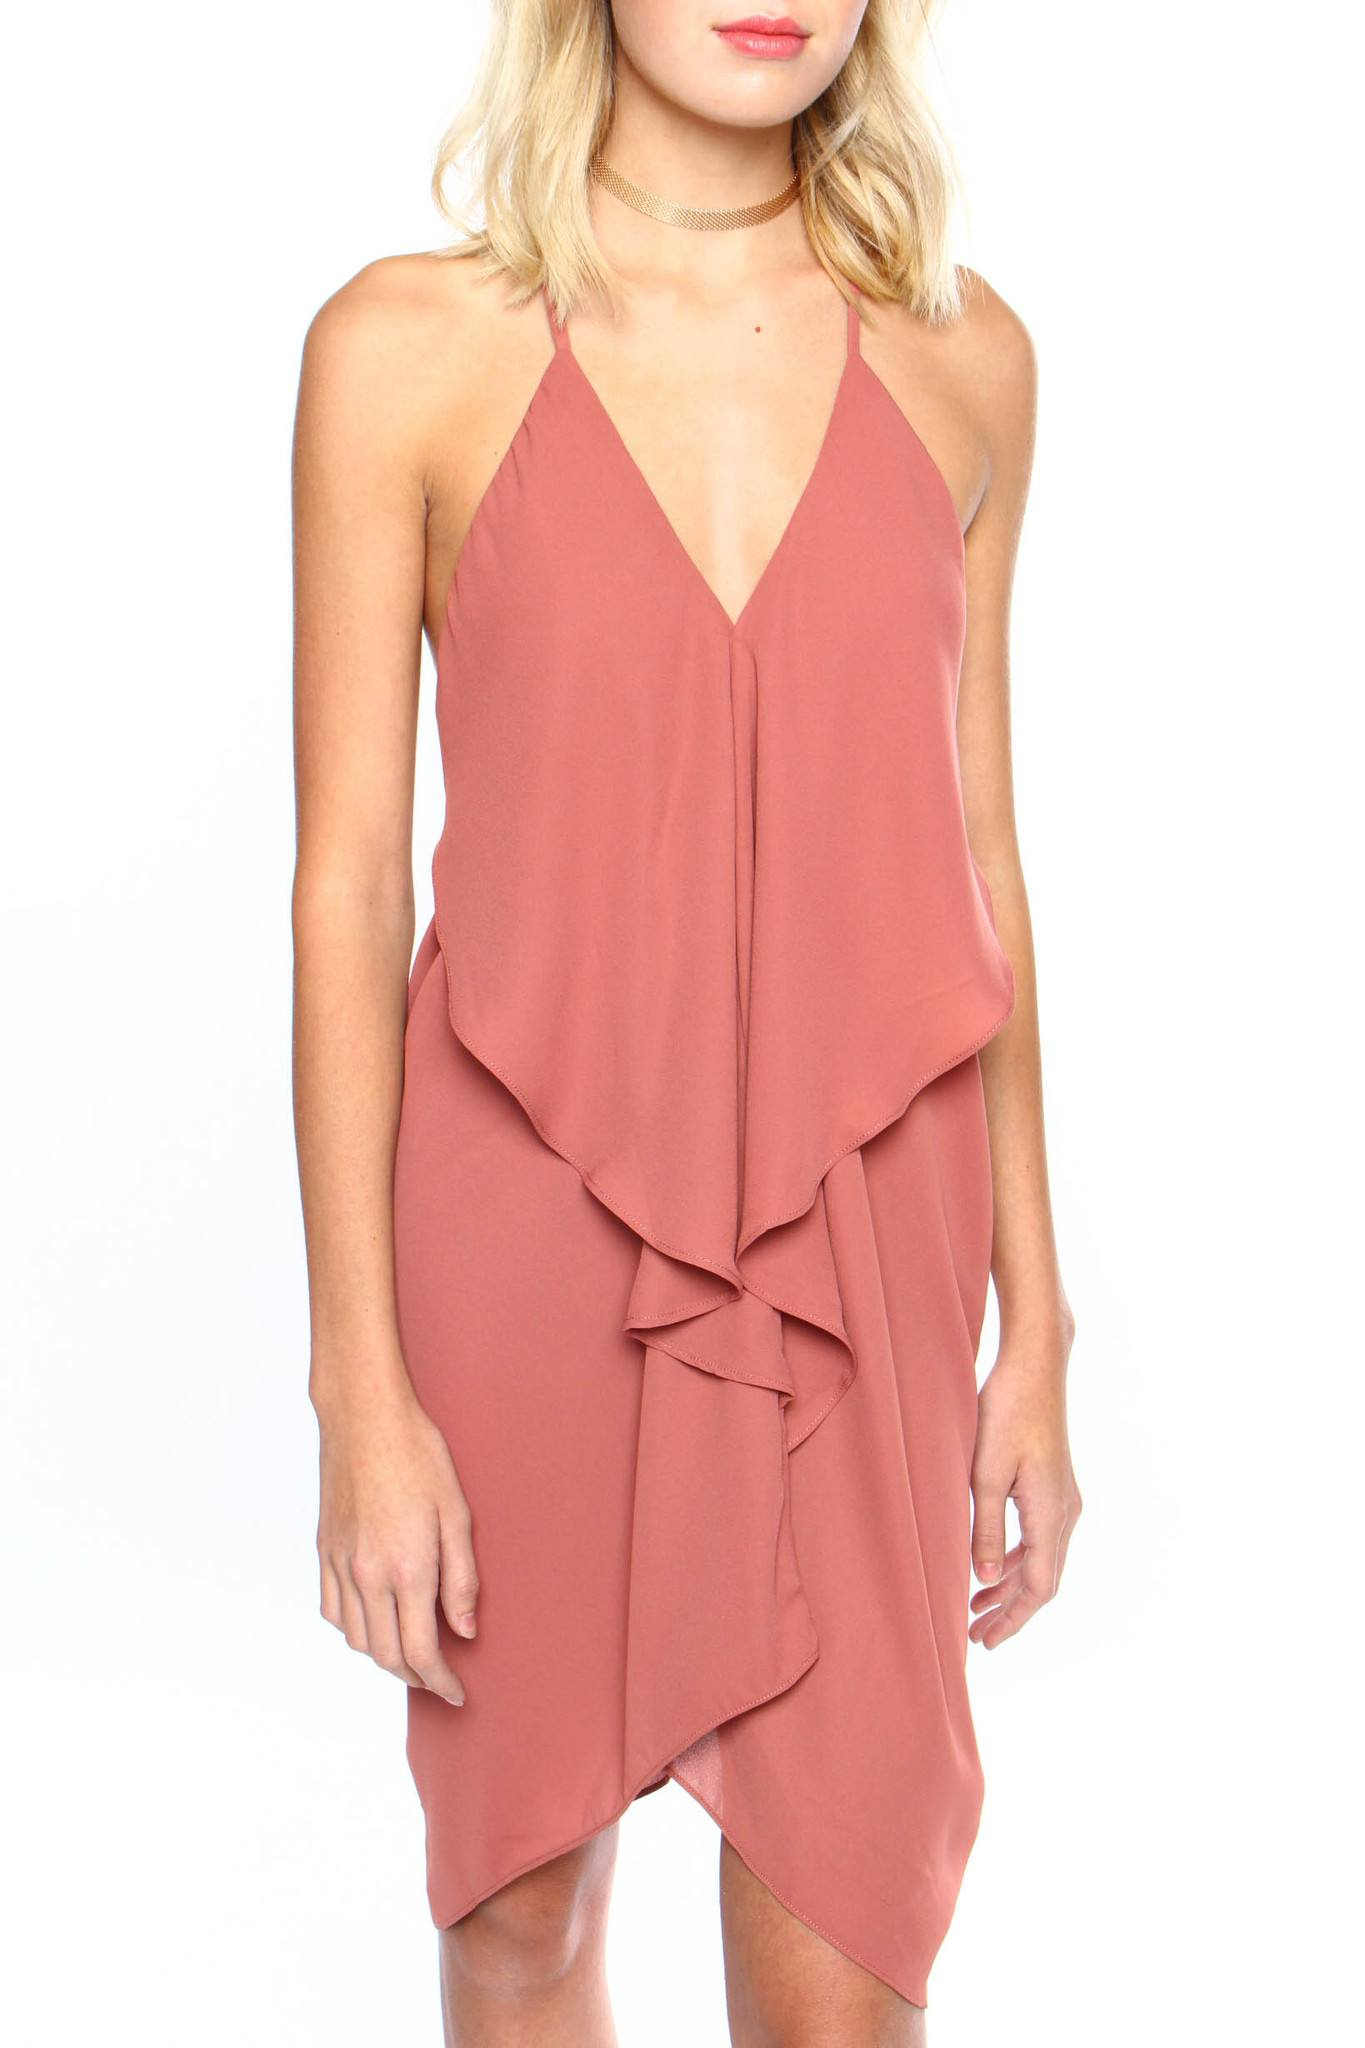 Take The Plunge Dress - Clay